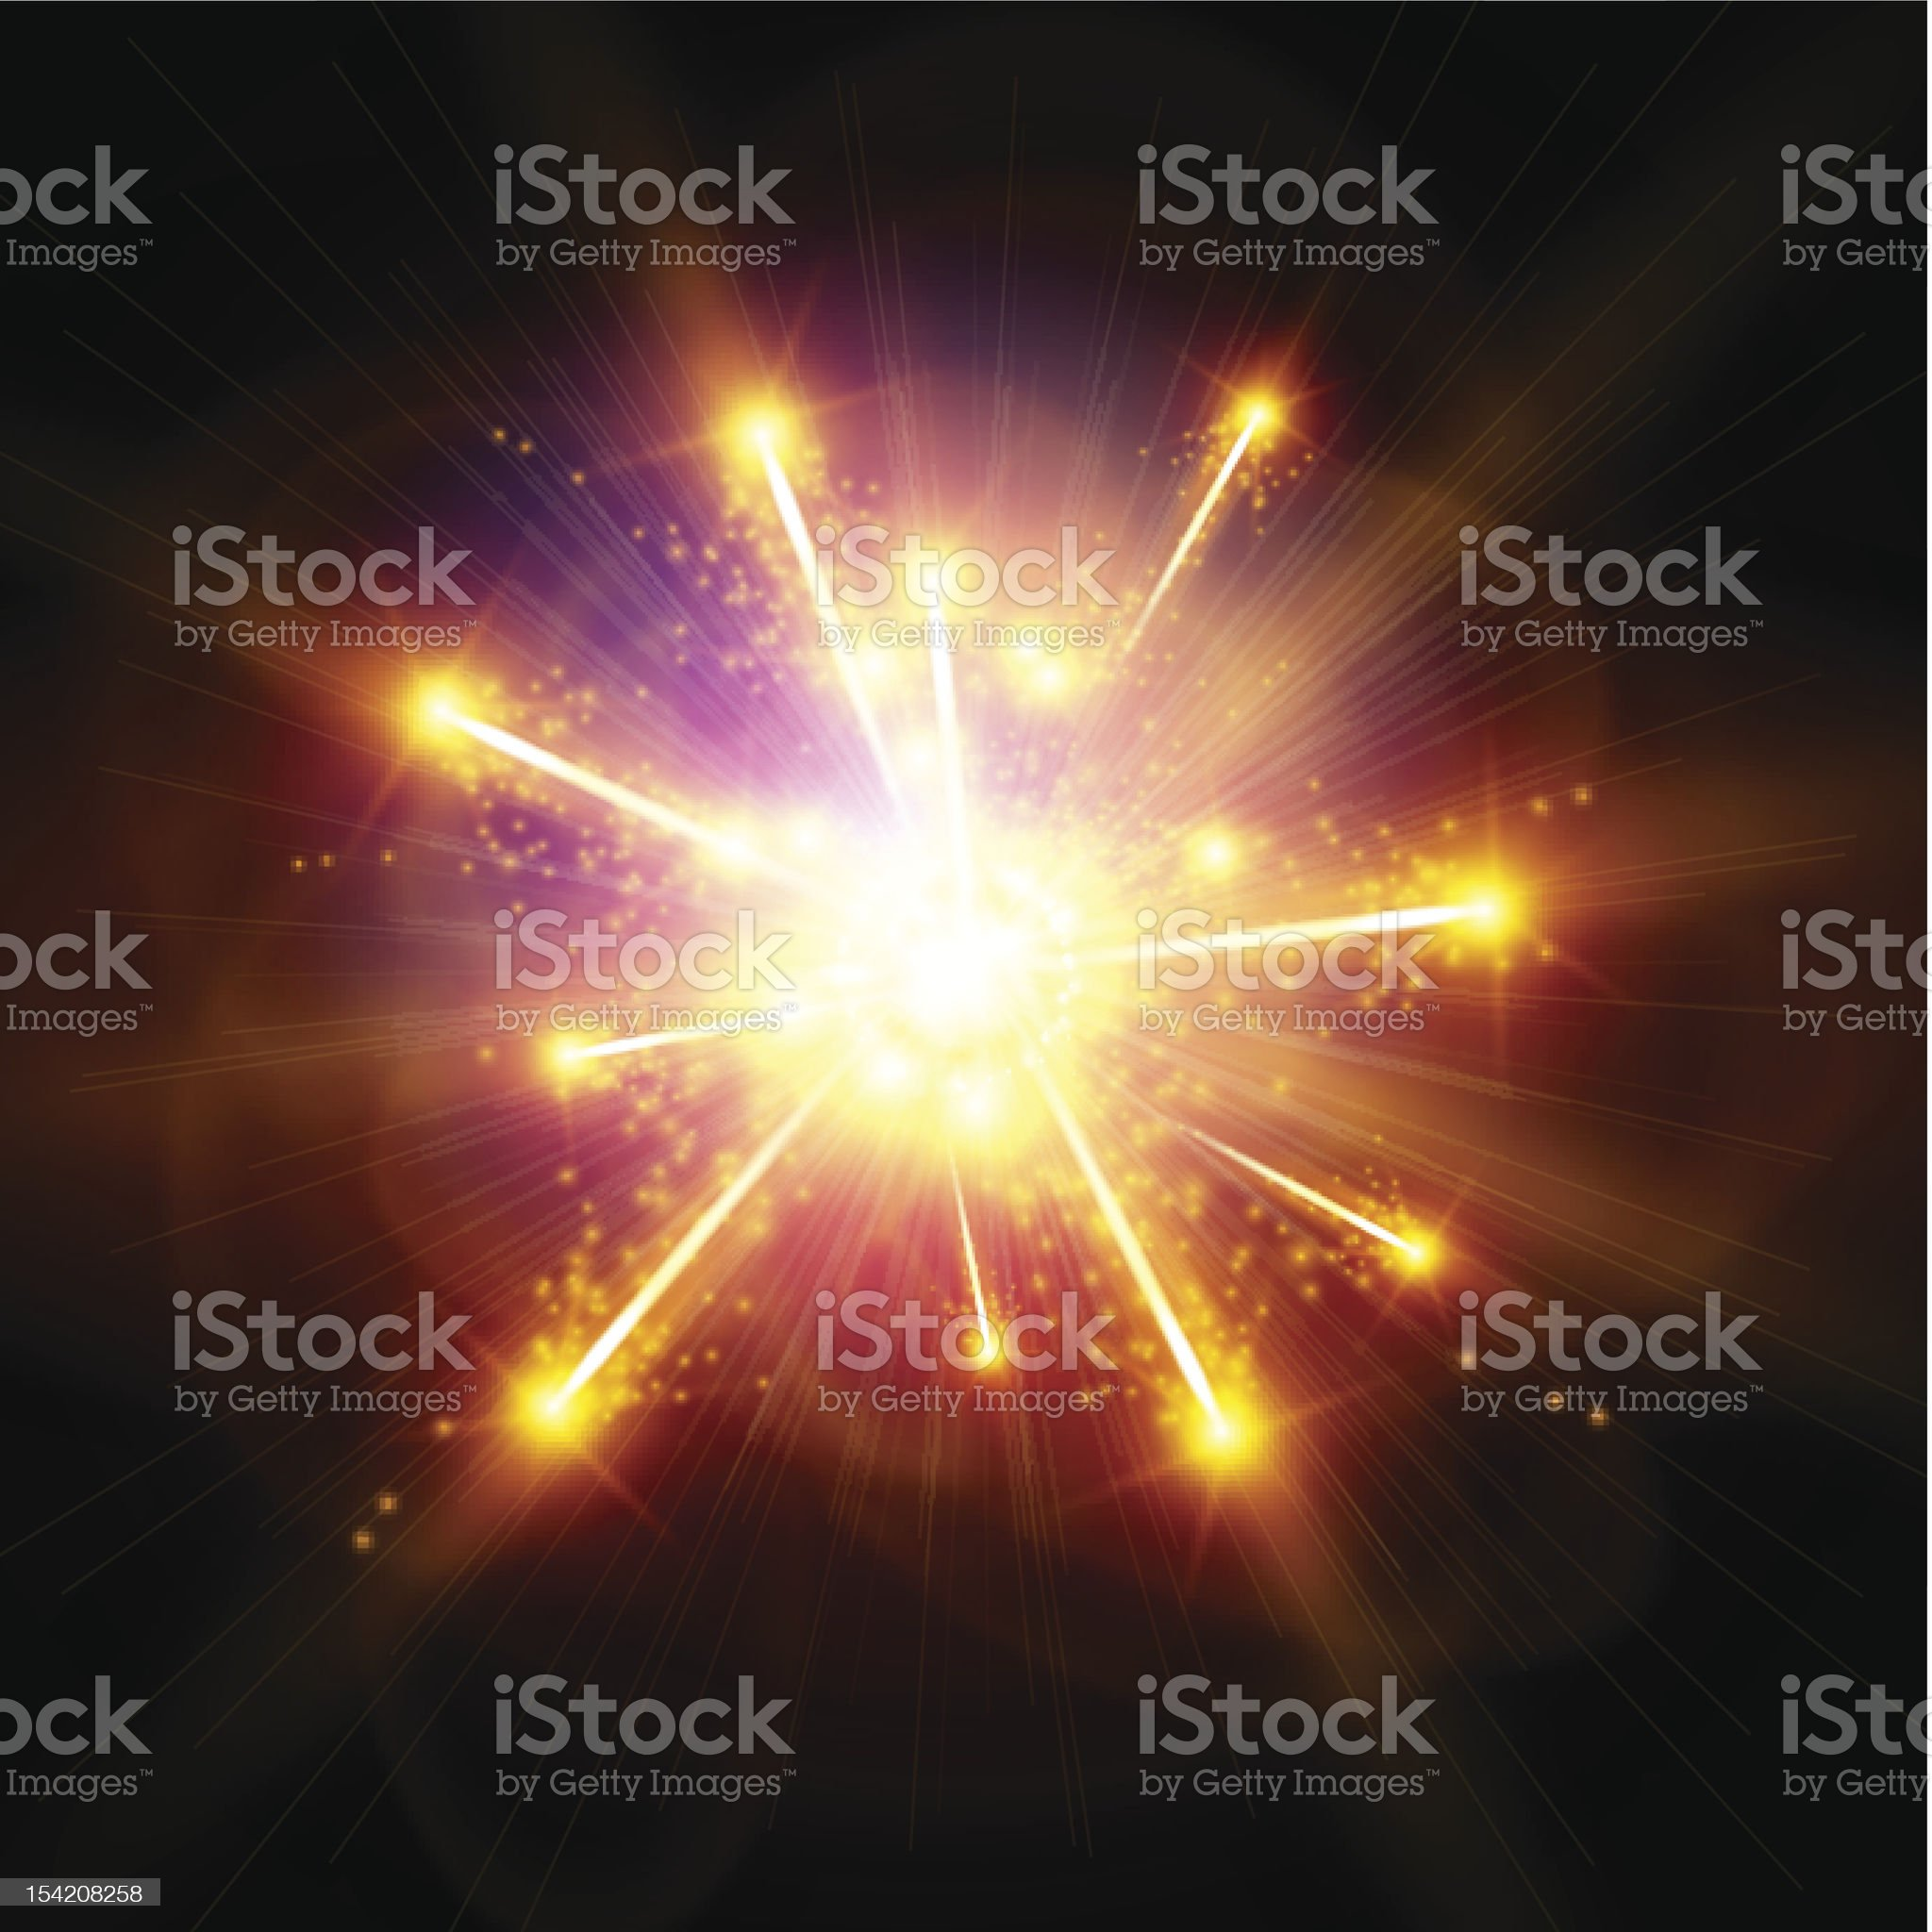 Explosion / Big Bang royalty-free stock vector art